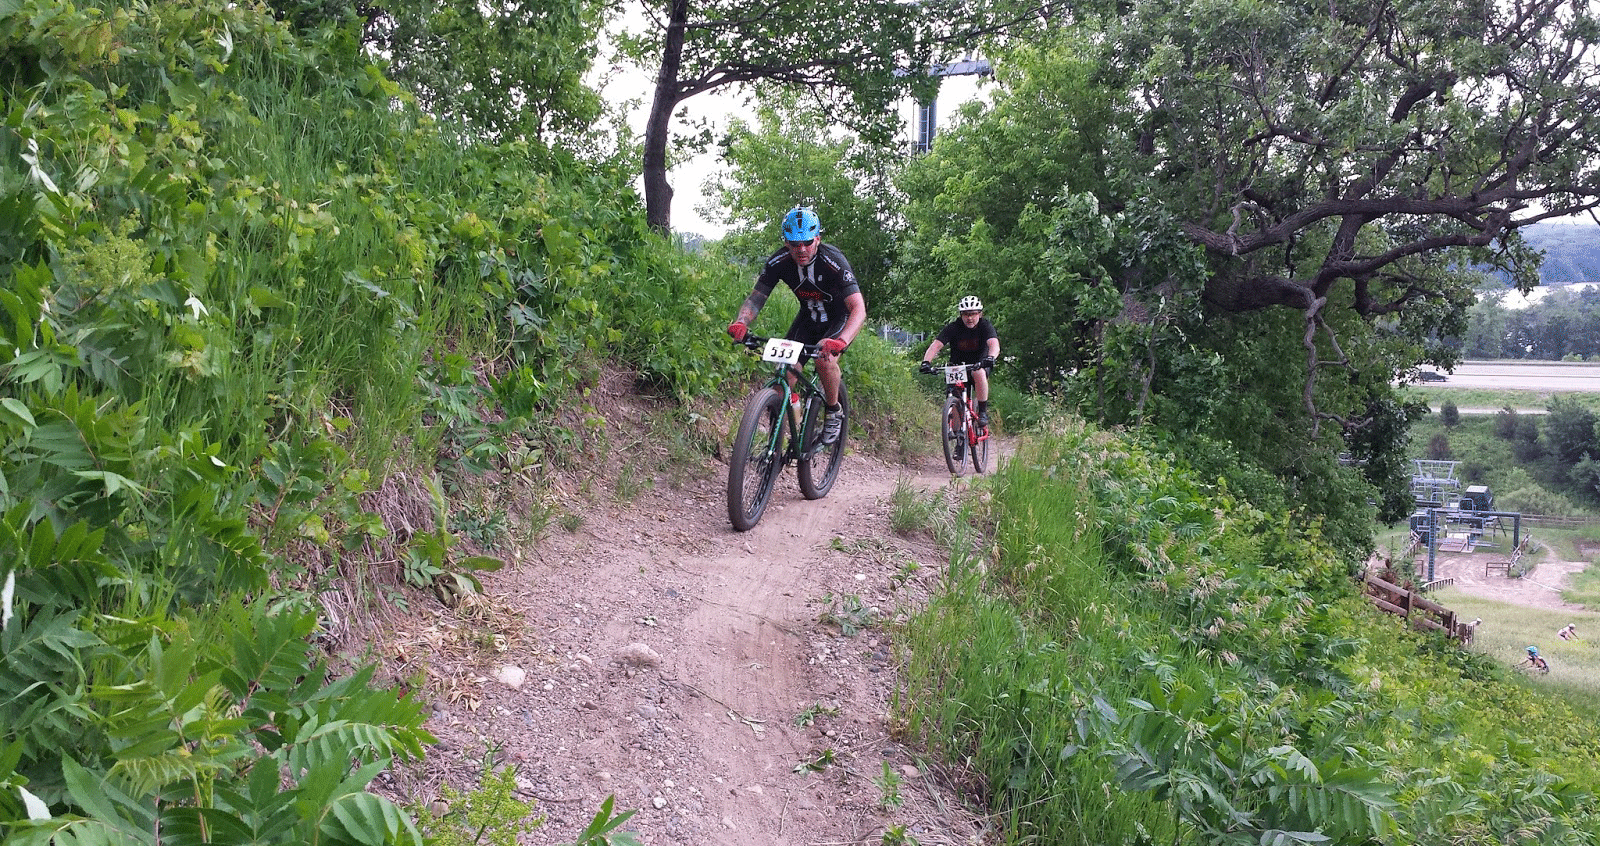 Mountain biking at buck hill